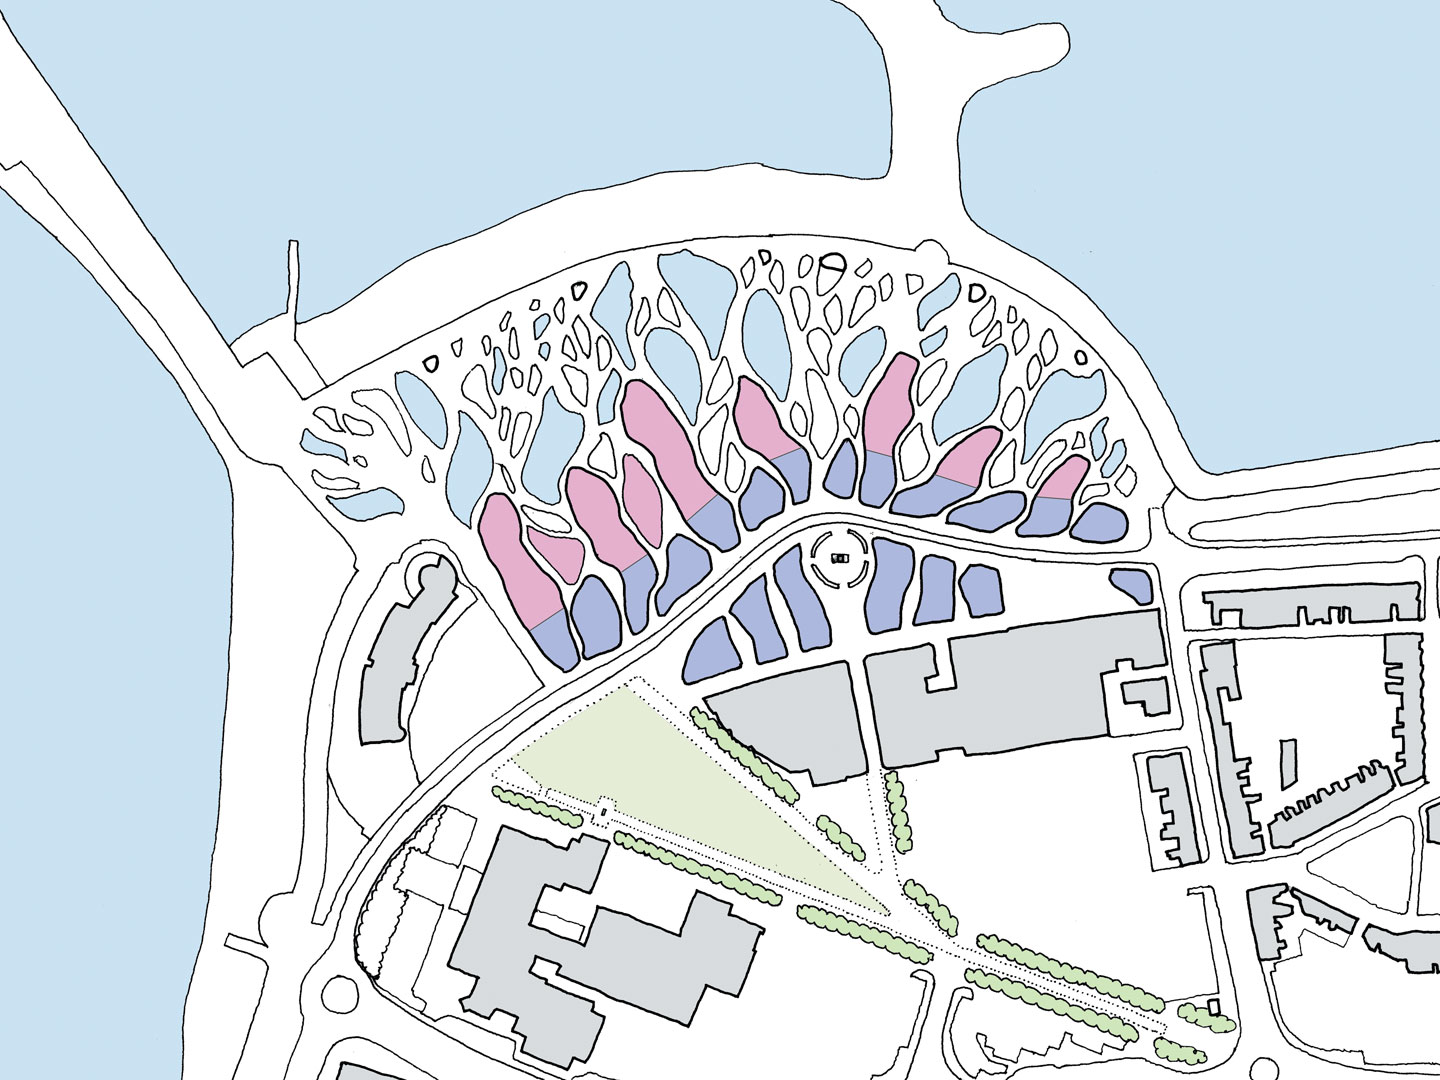 morecambe-site_plan